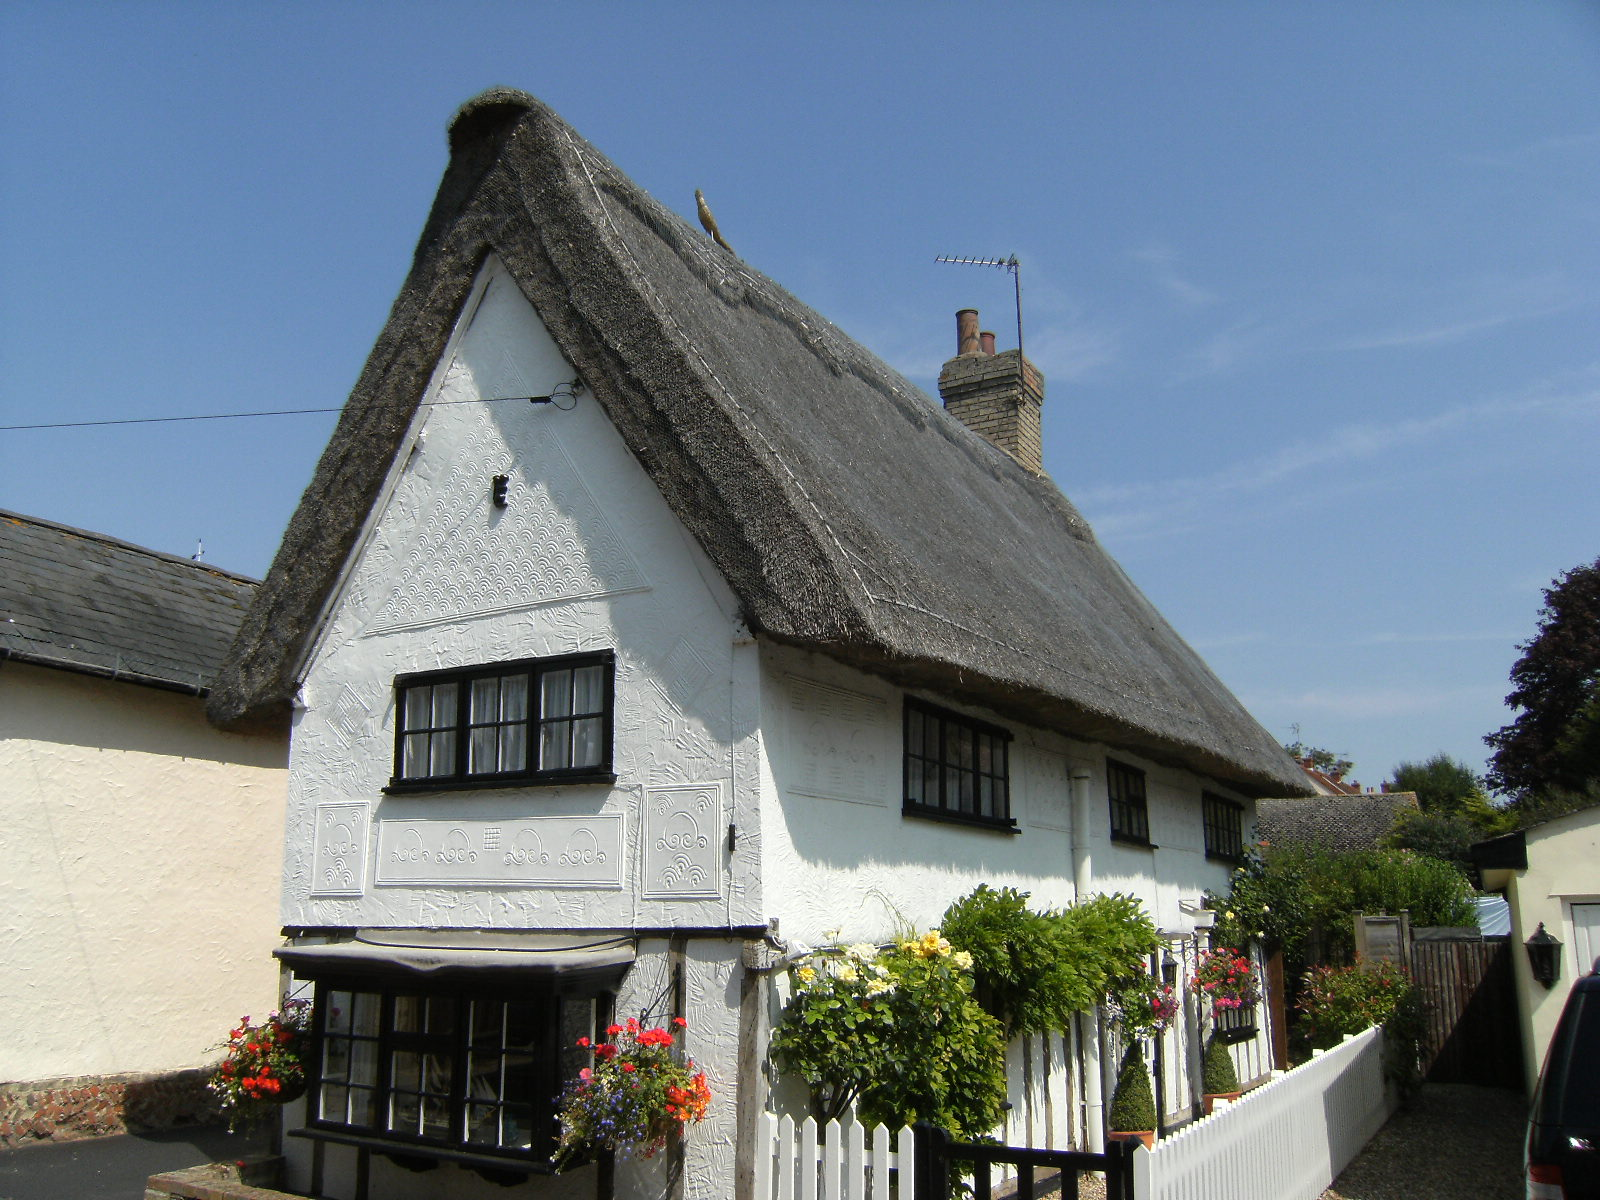 DSCF8964 Thatched cottage, Great Chesterford